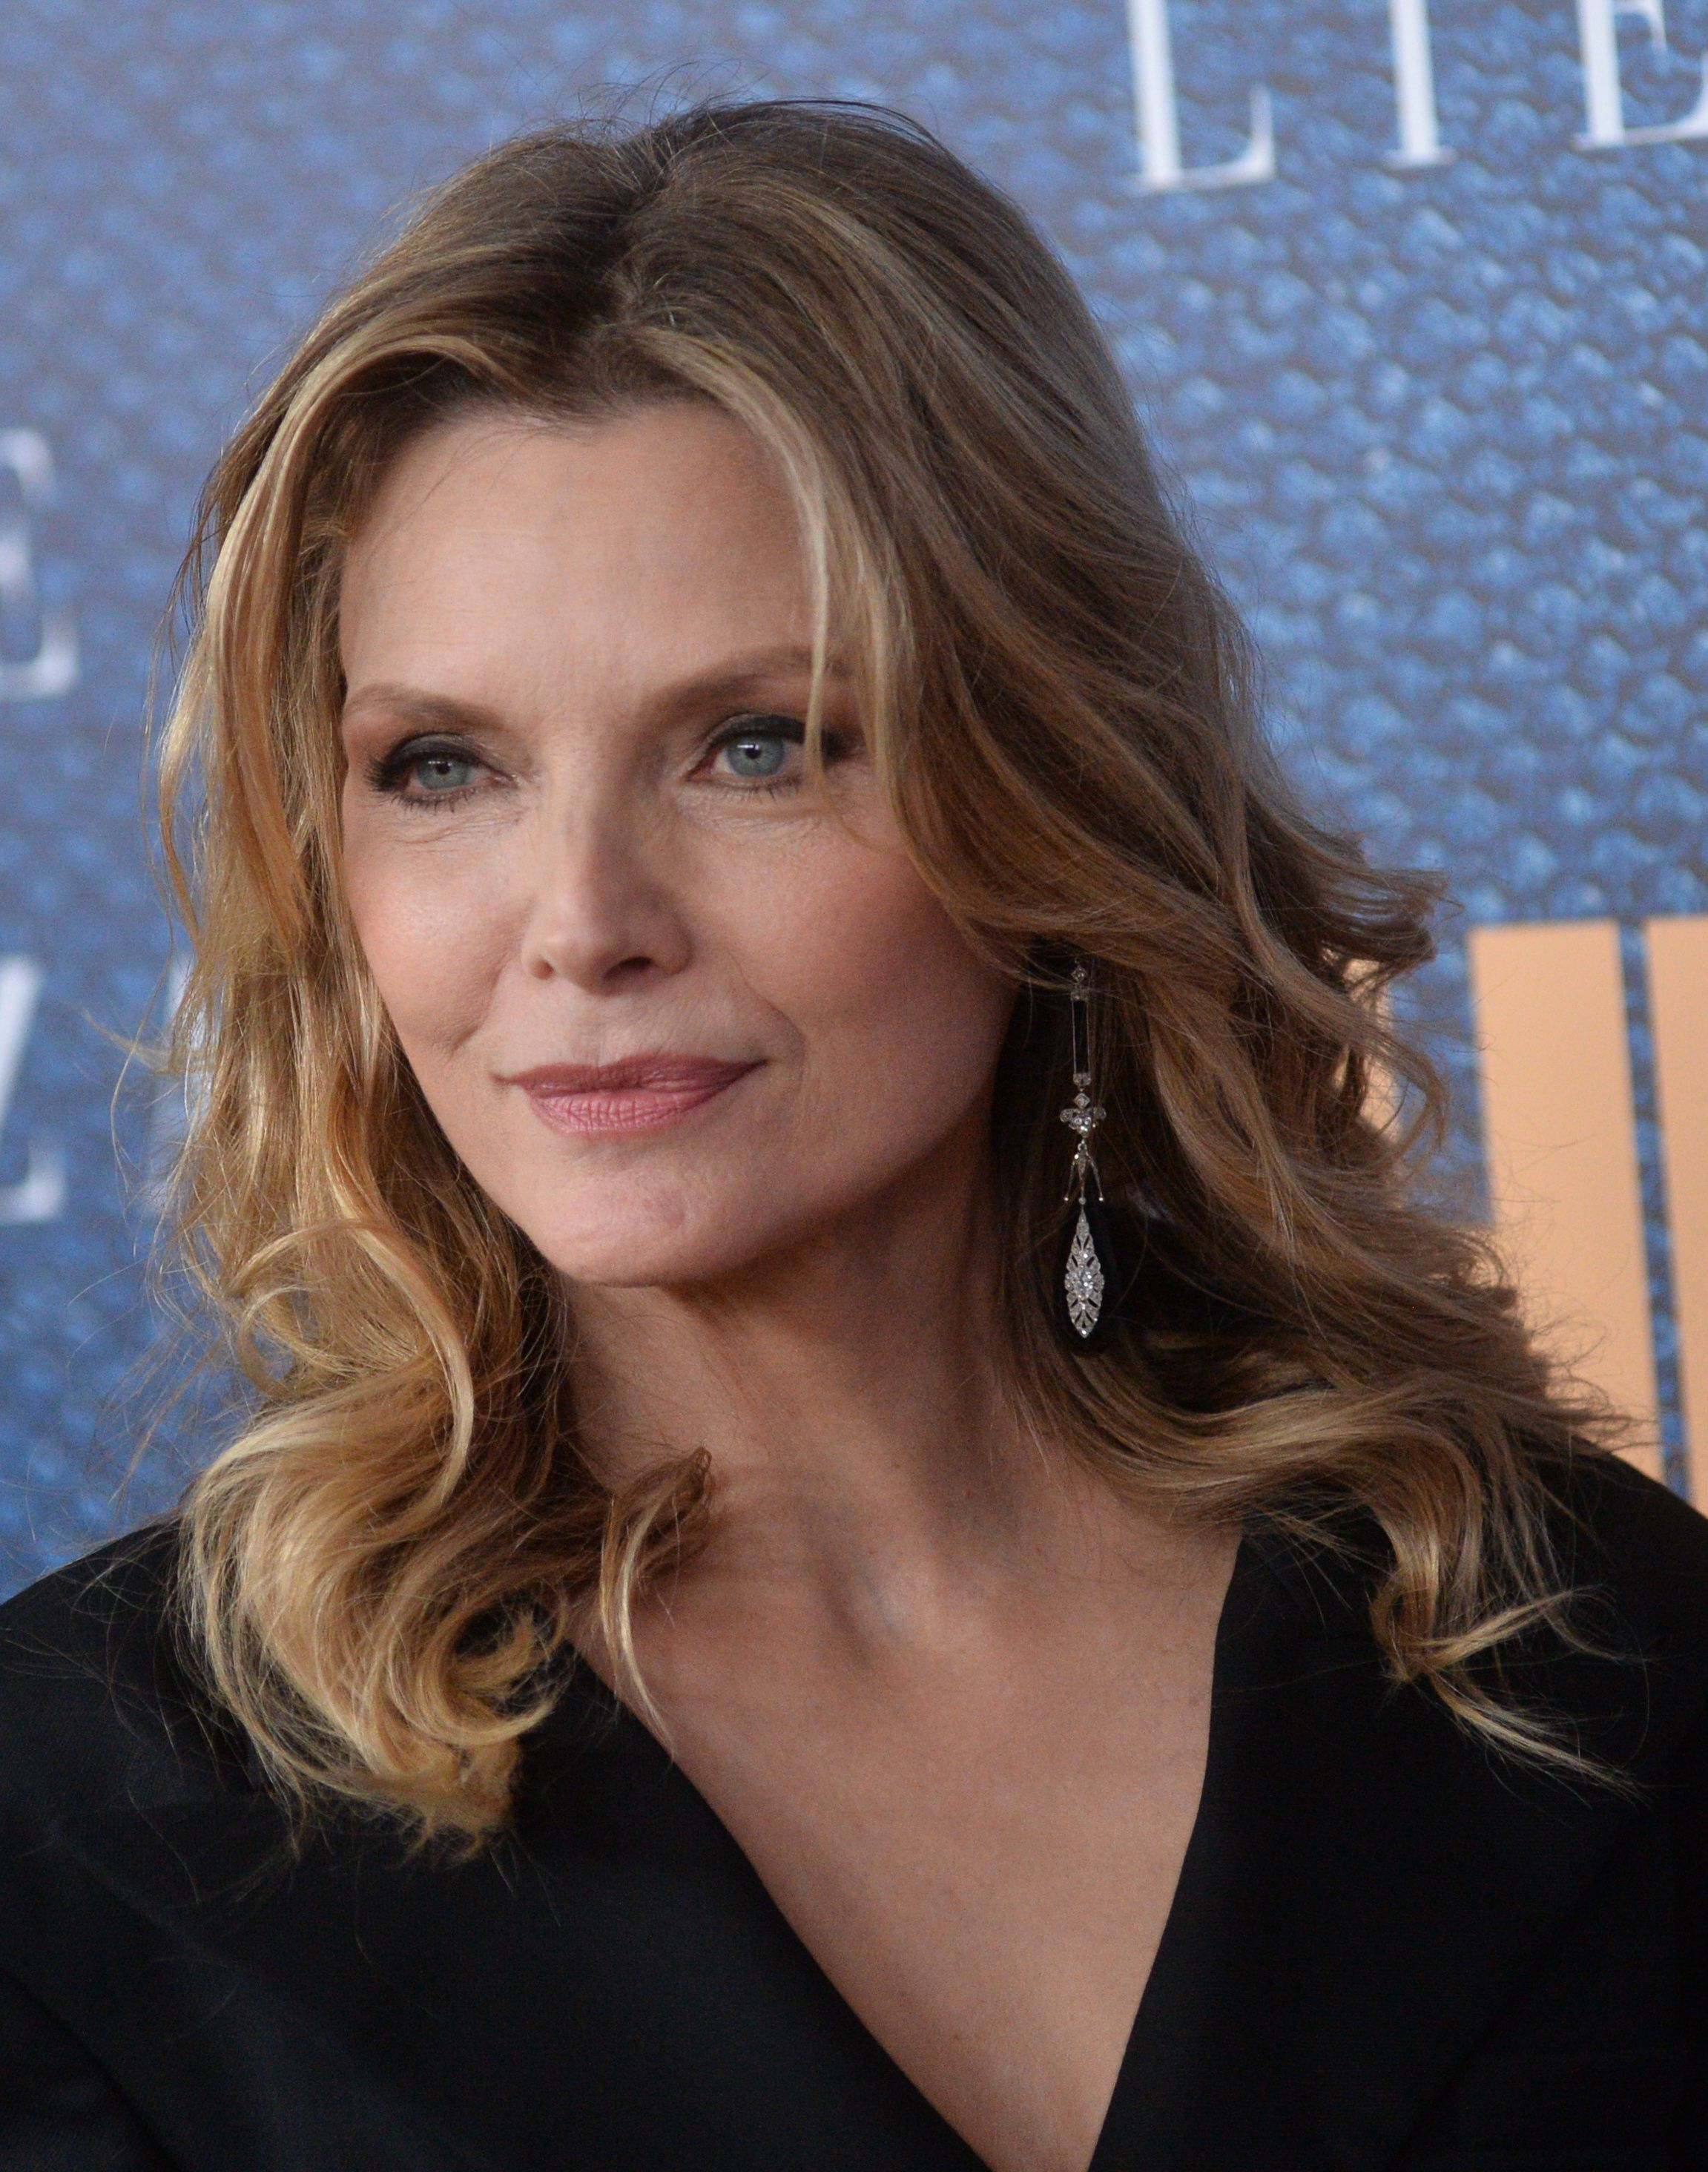 Michelle Pfeiffer at the 2017 Wizard of Lies premiere